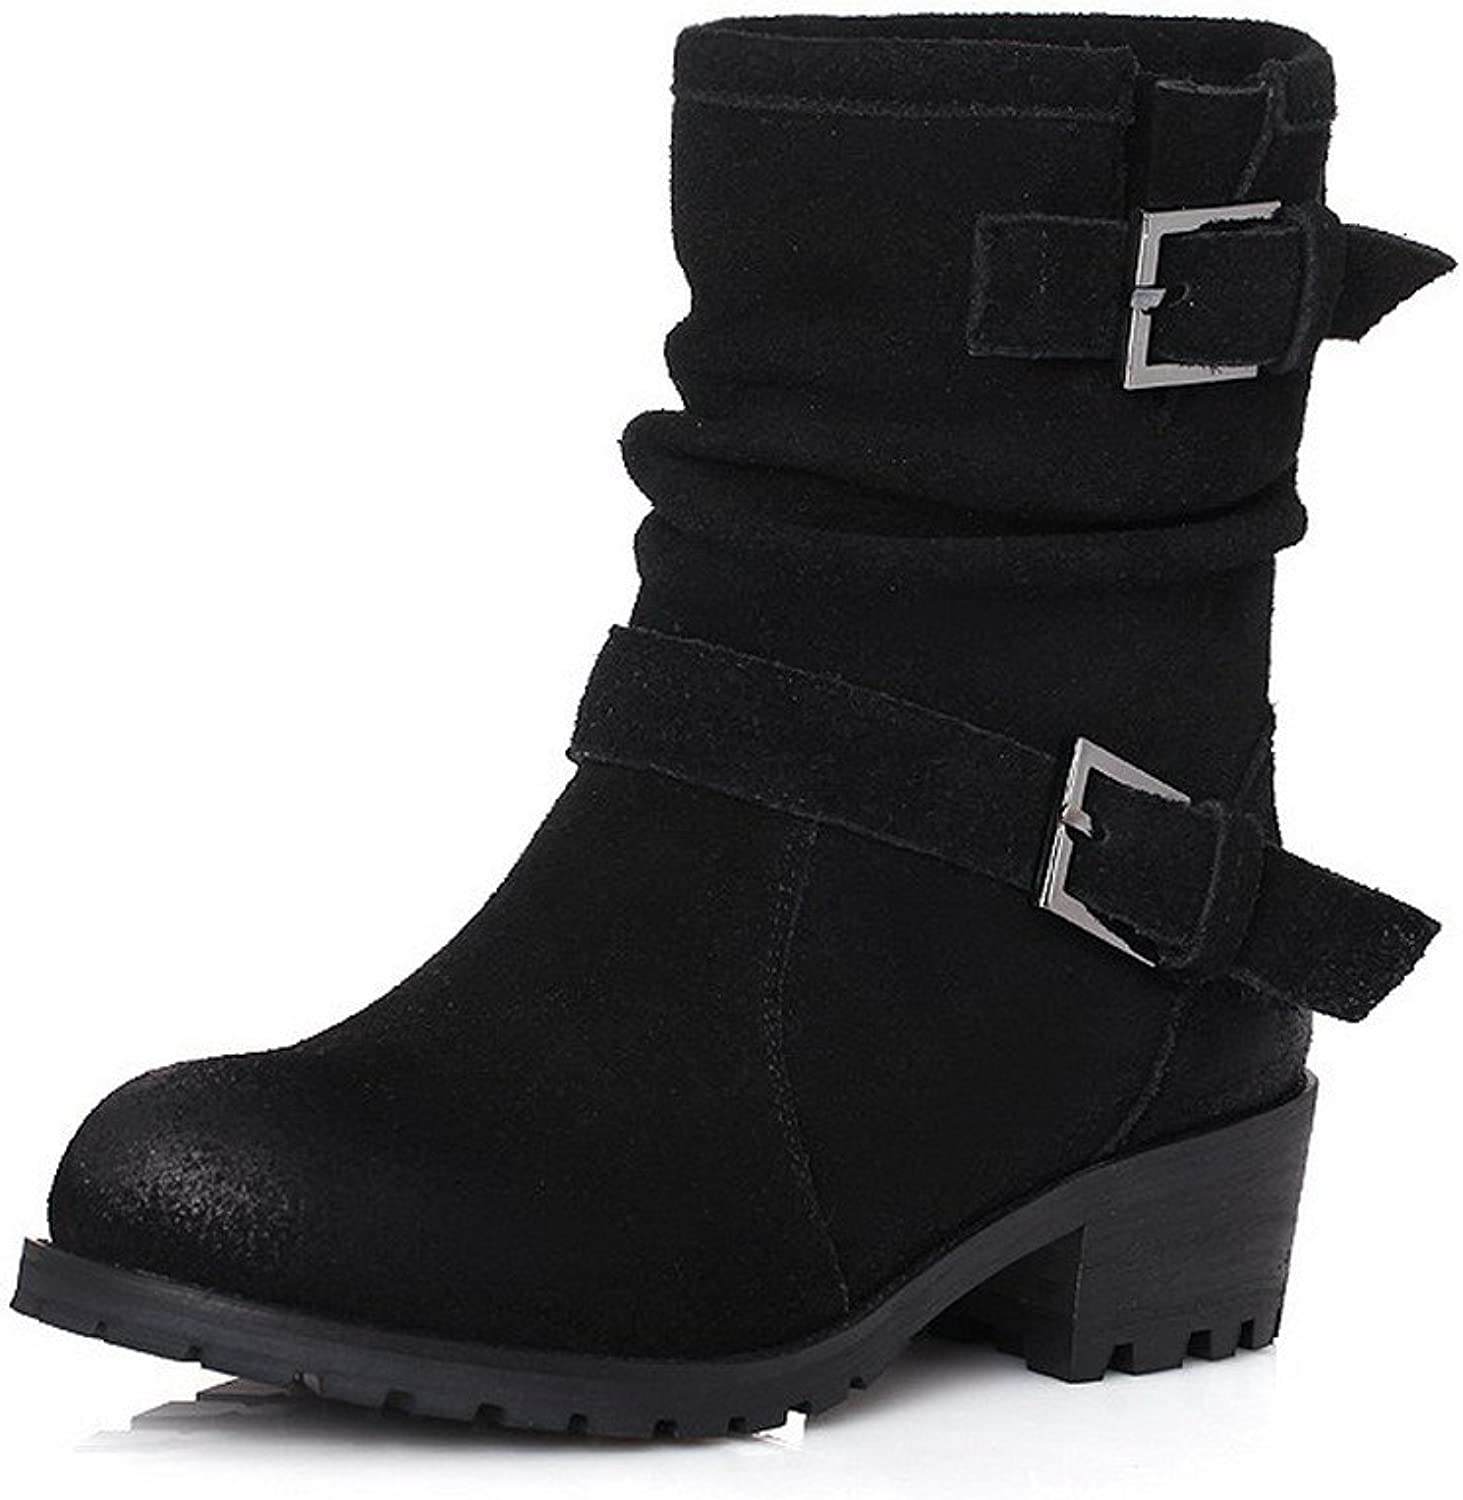 AmoonyFashion Women's Round-Toe Closed-Toe Kitten-Heels Boots with Ruched and Platform